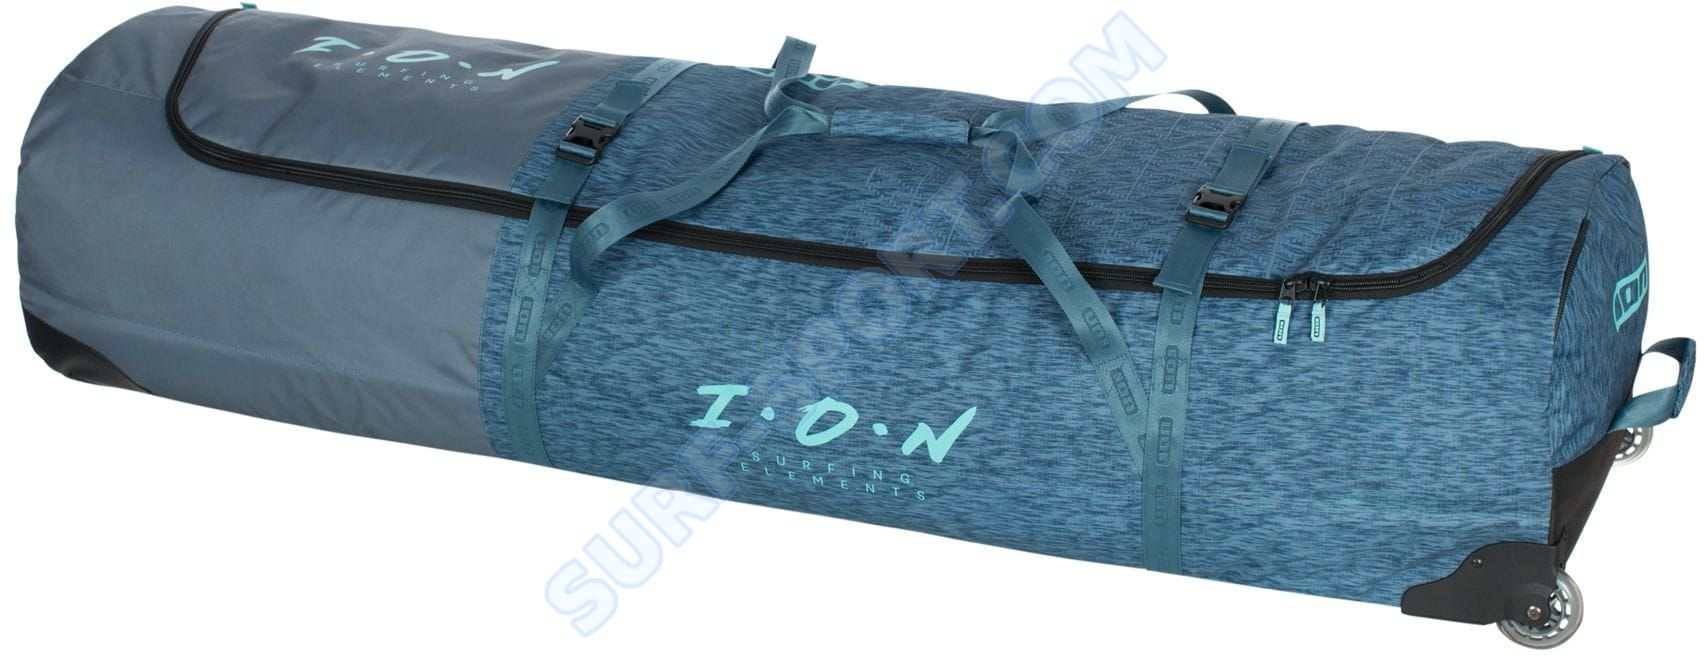 48900-7018_Ion Gear Bag Core 2020-blue.jpg